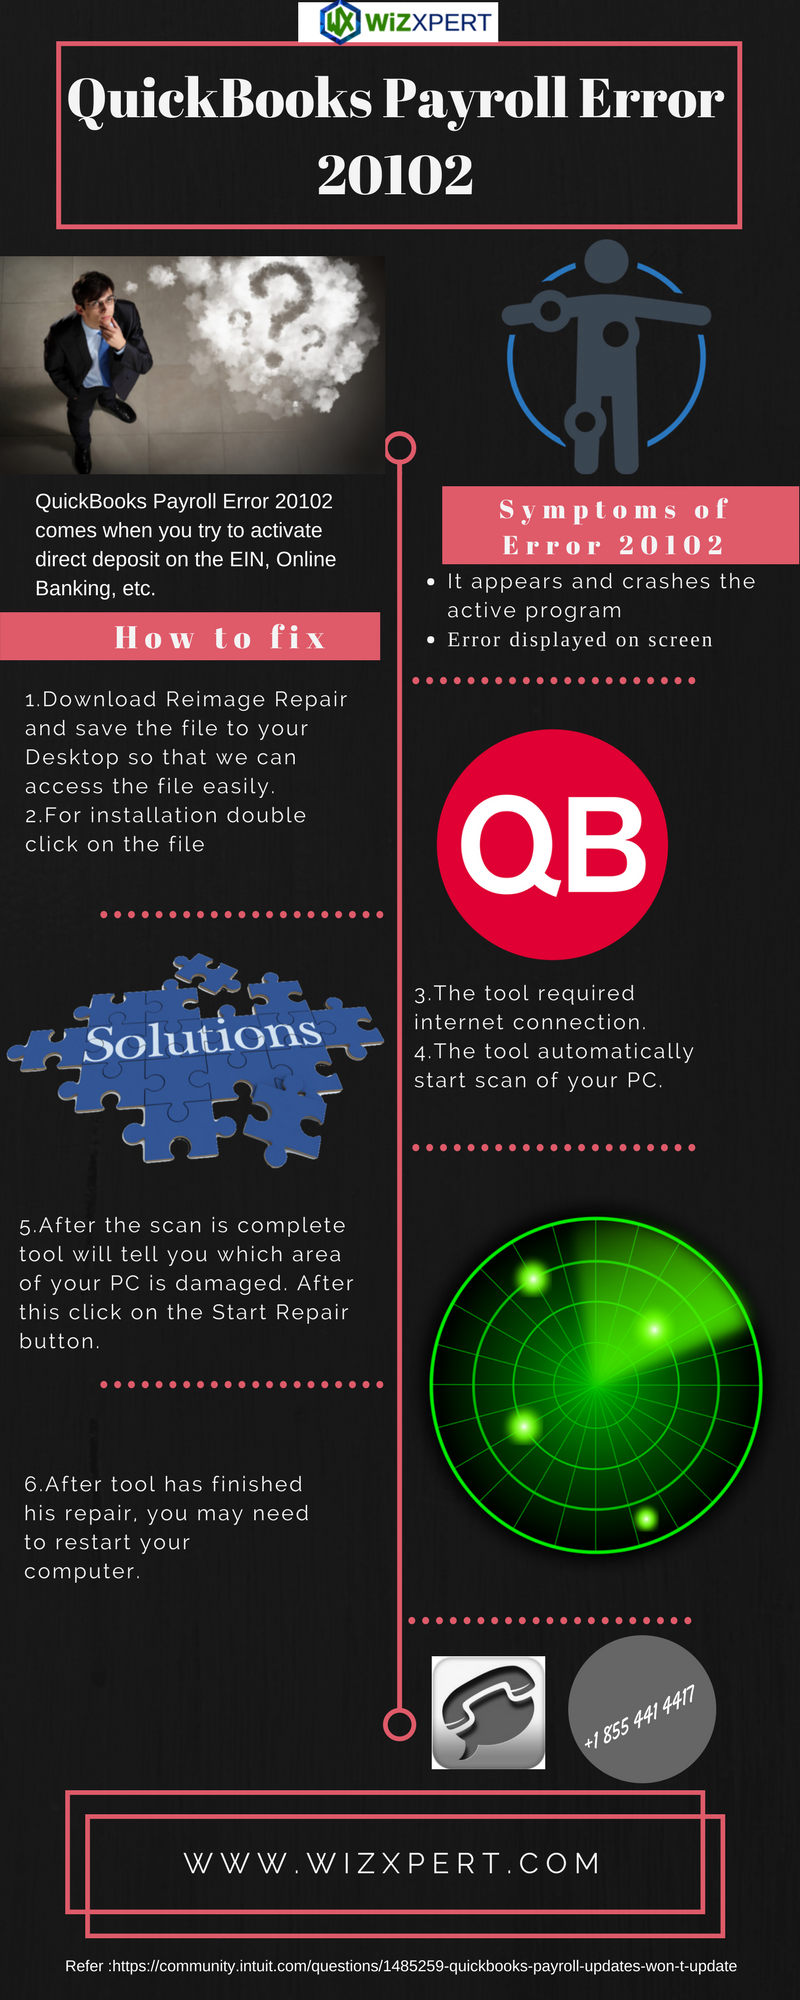 Pin by Donna on QUICKBOOKS TIPS   Quickbooks payroll, Error code